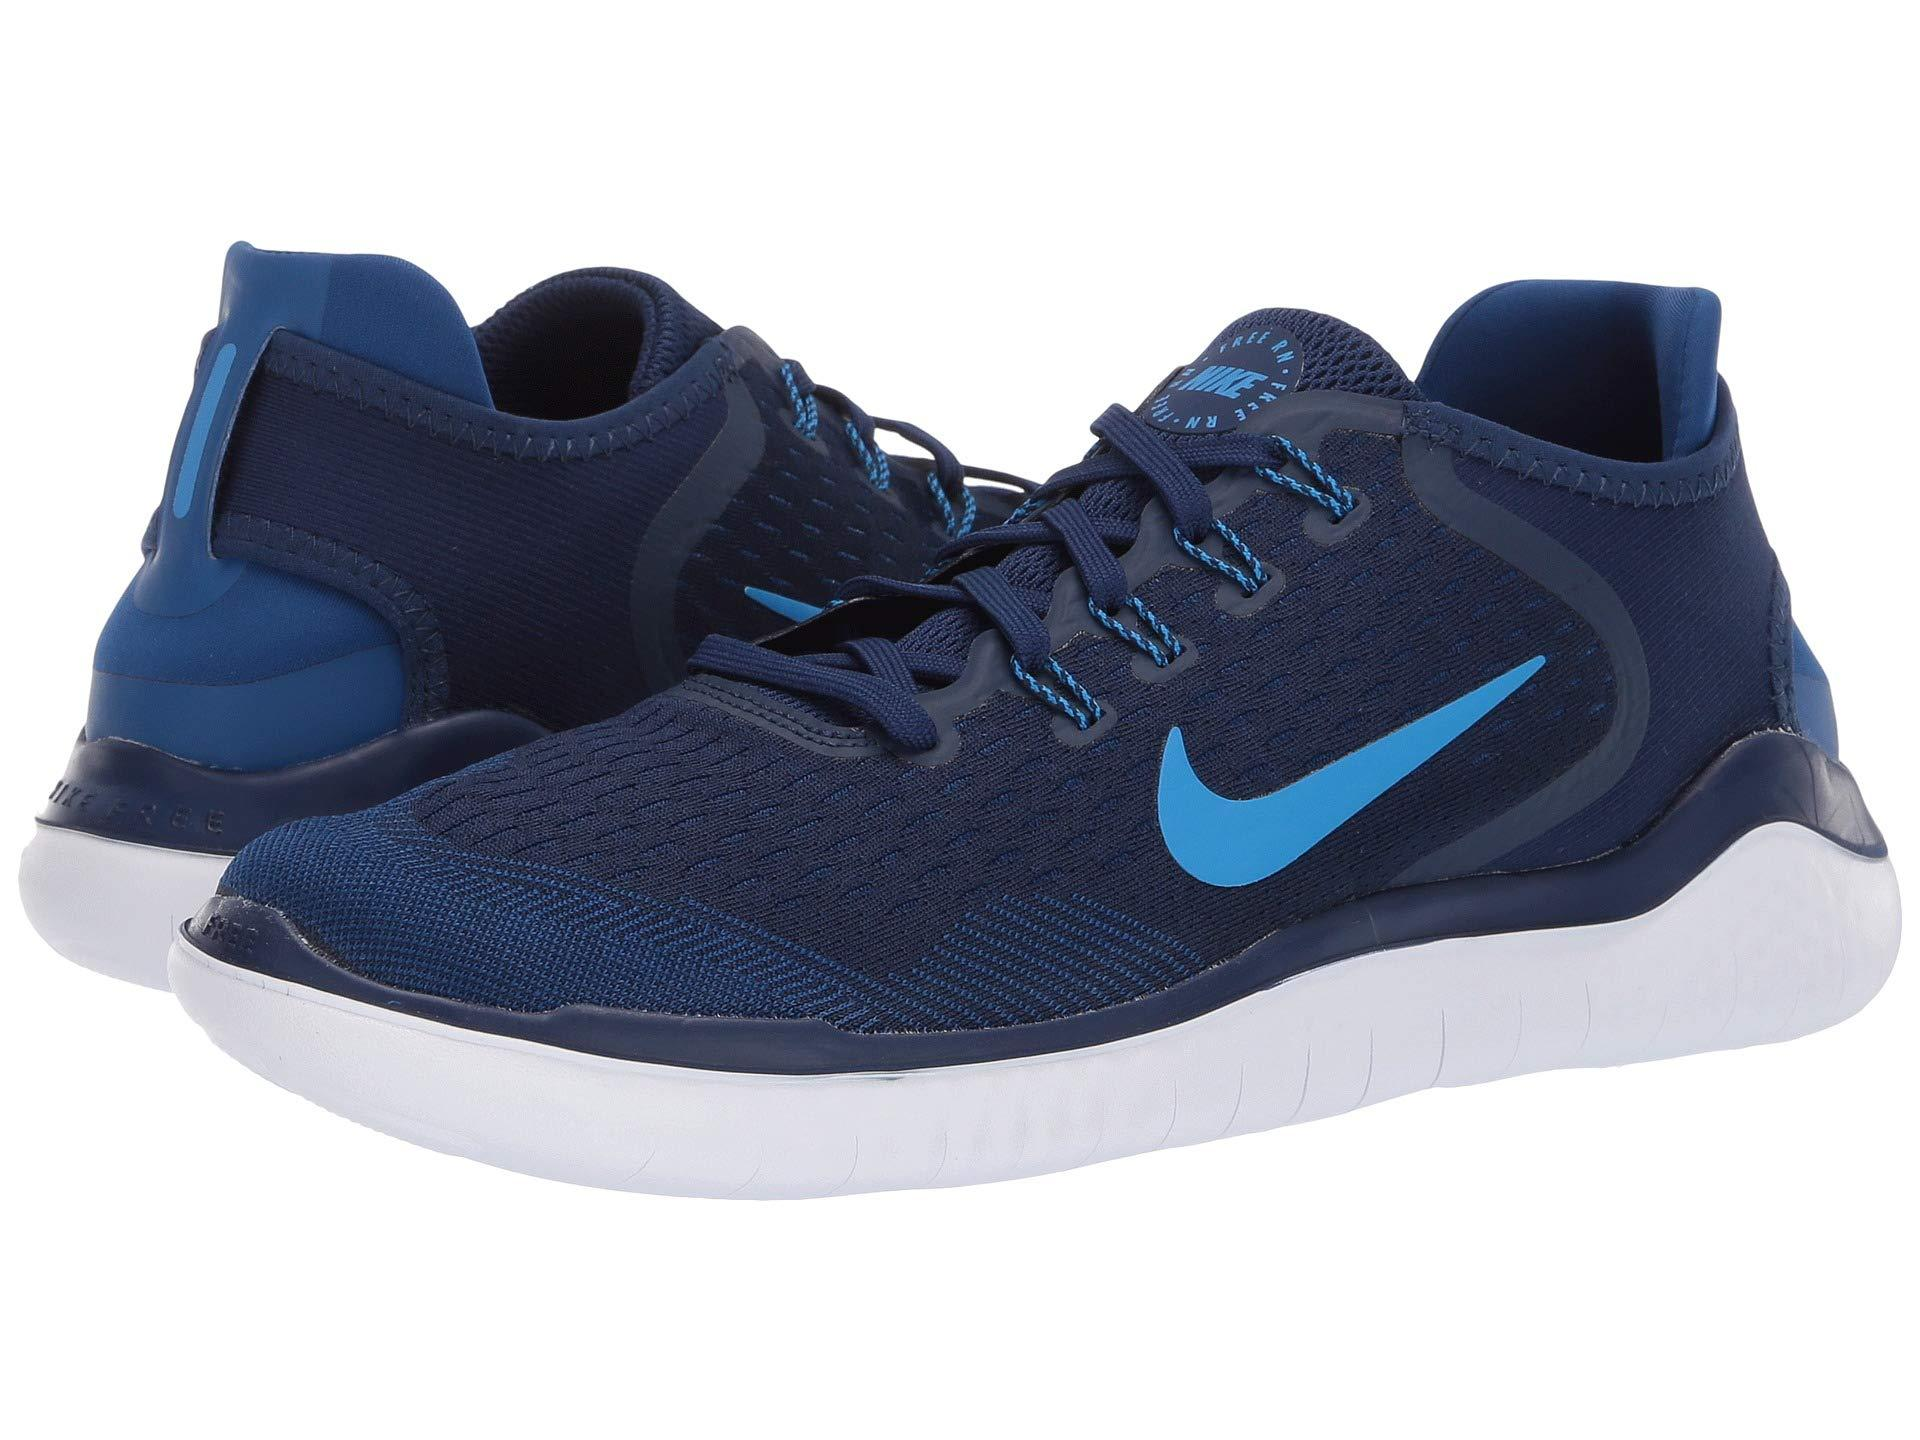 17a515e11279 Lyst - Nike Free Rn 2018 Running Shoes in Blue for Men